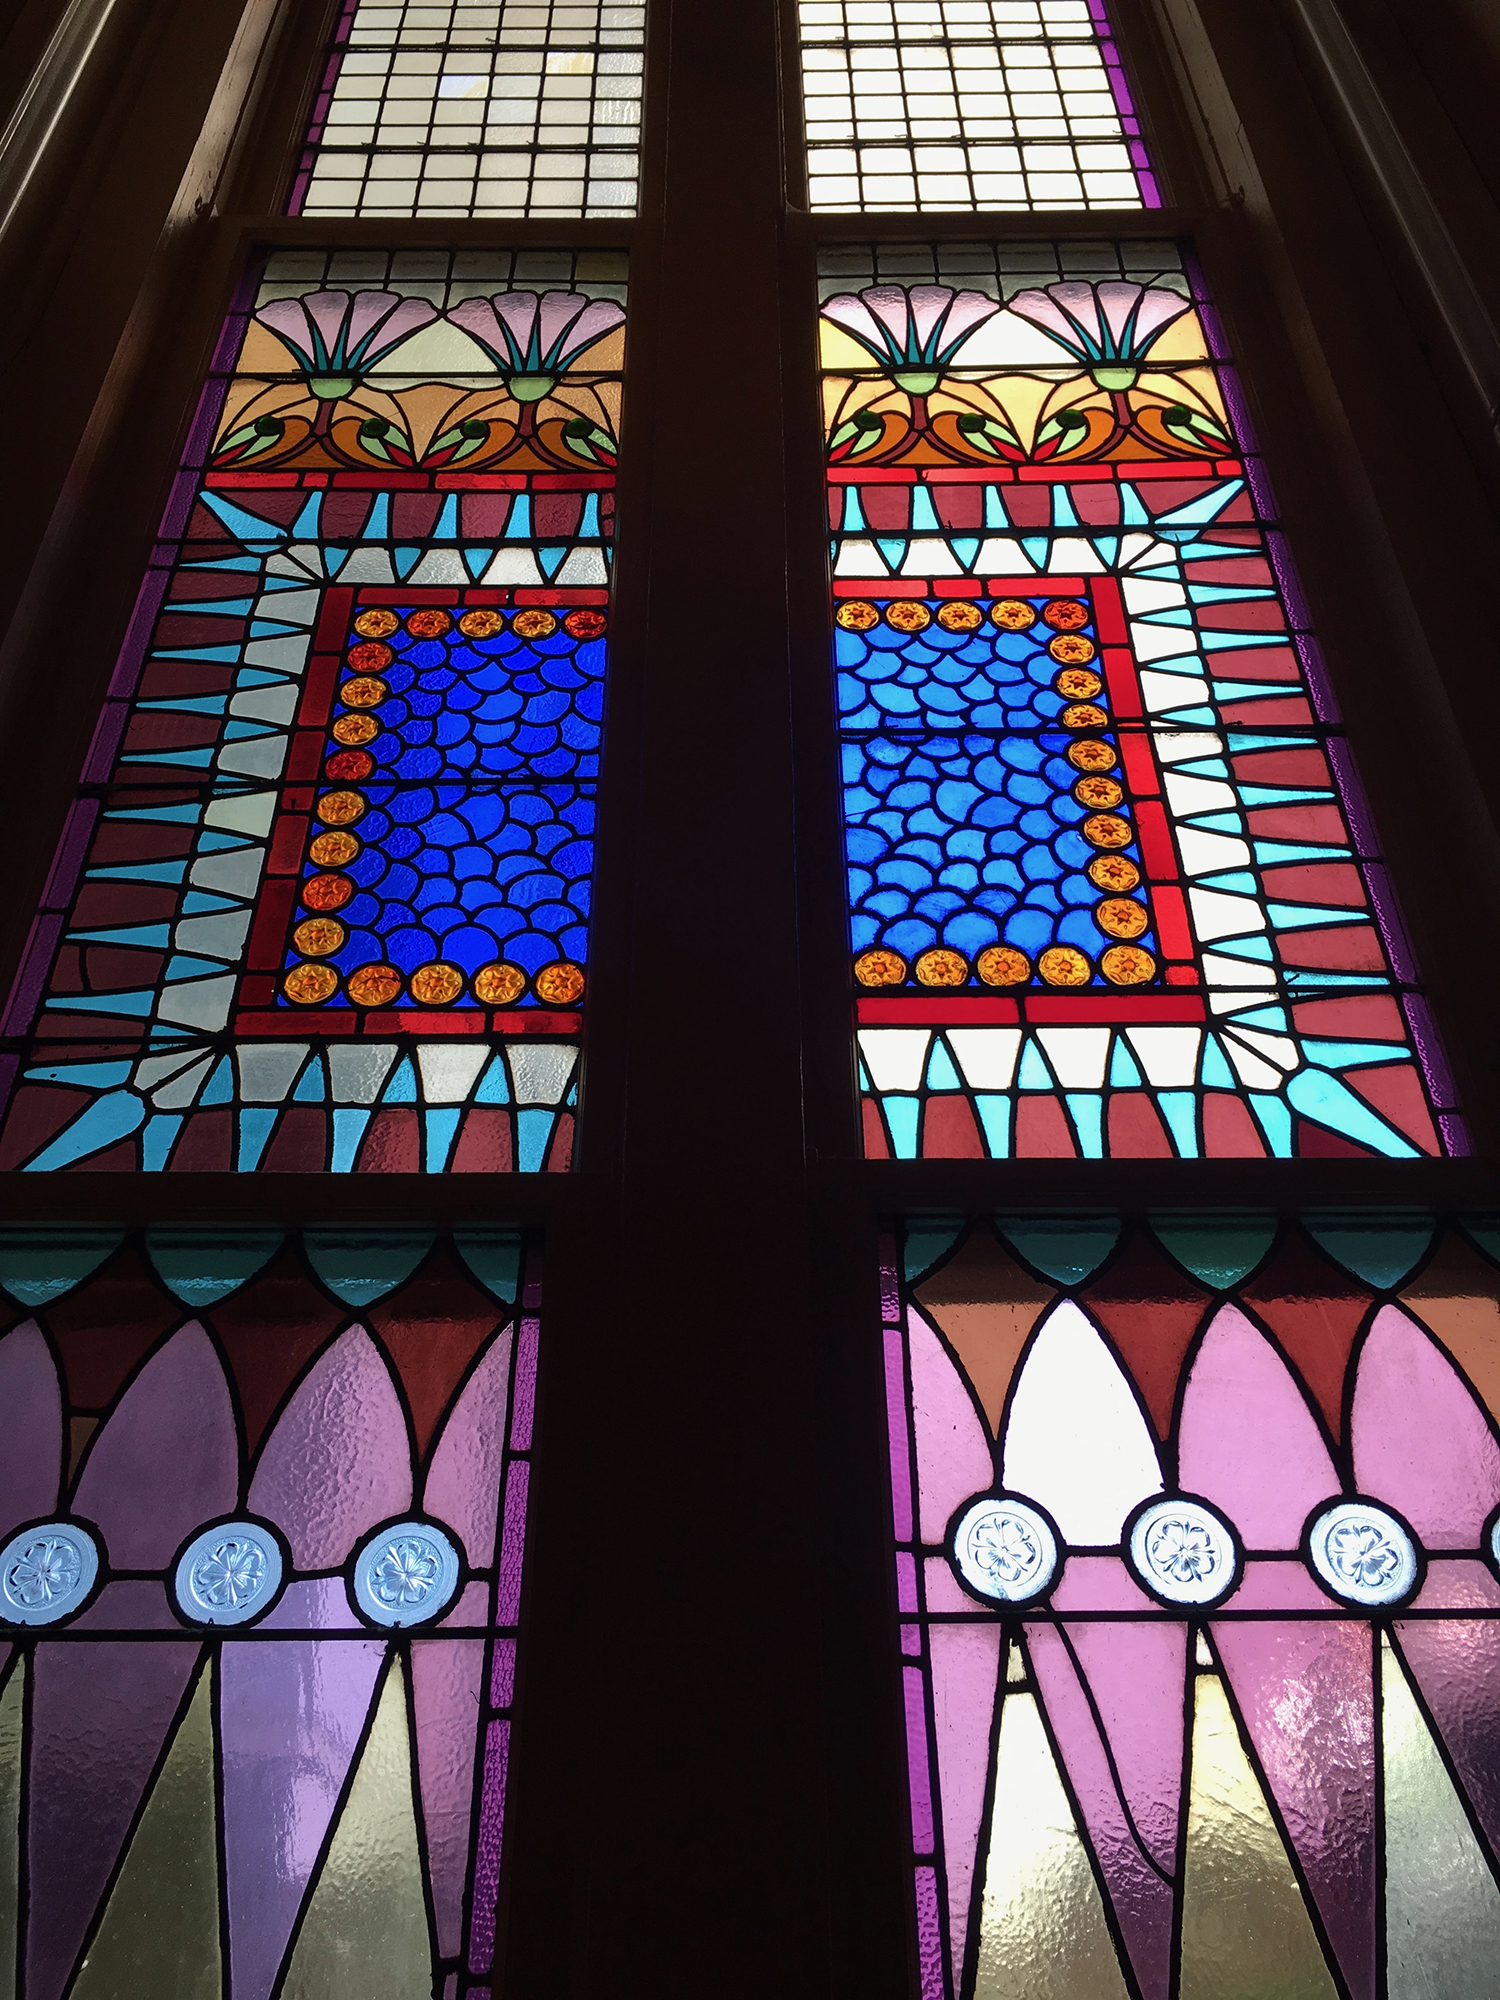 Stained glass windows in the beautiful Egyptian Revival downtown Presbyterian church.